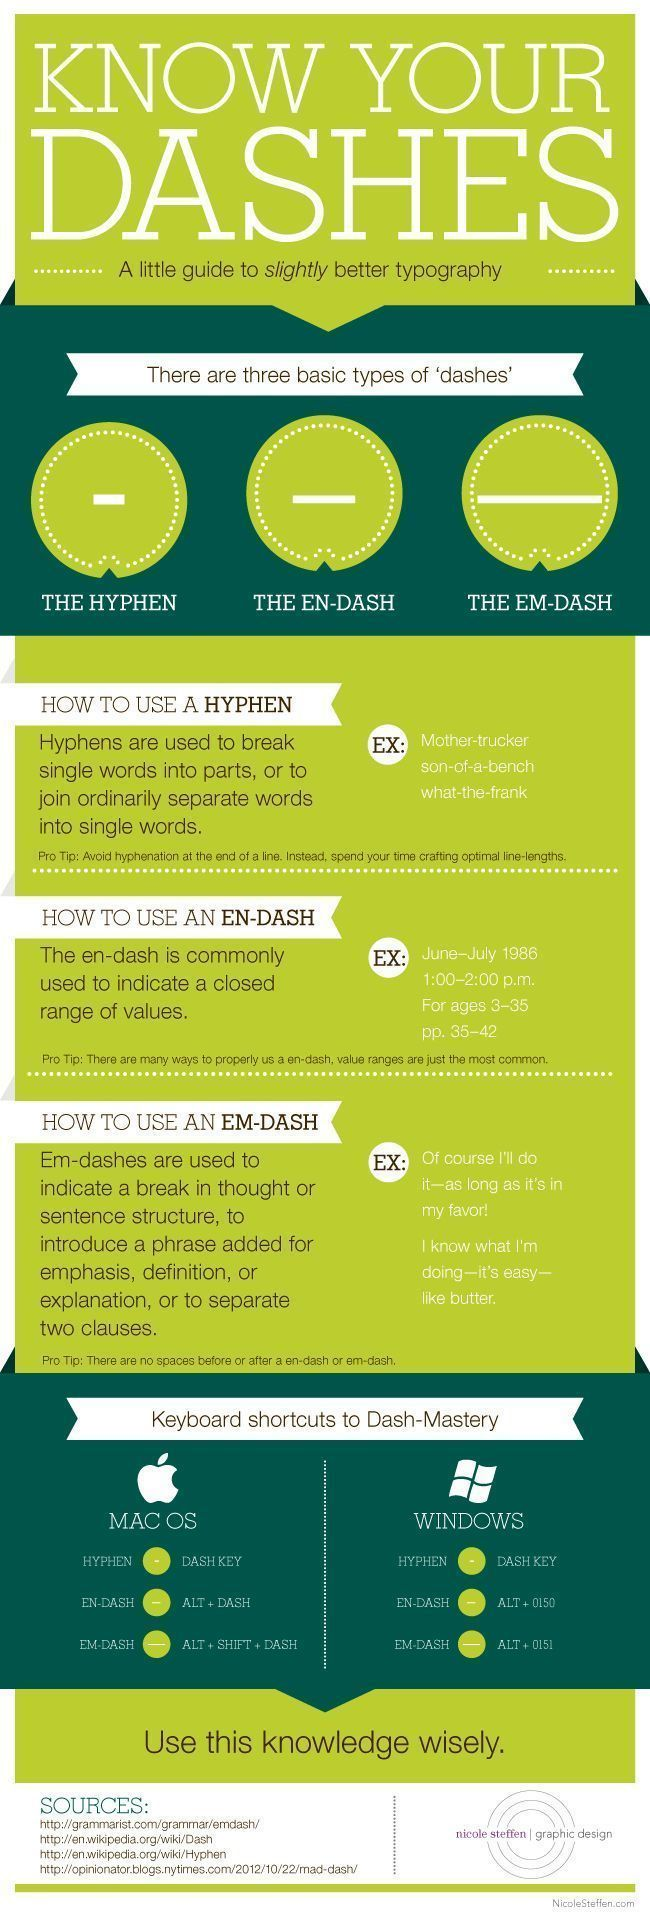 Know Your Dashes - Writers Write